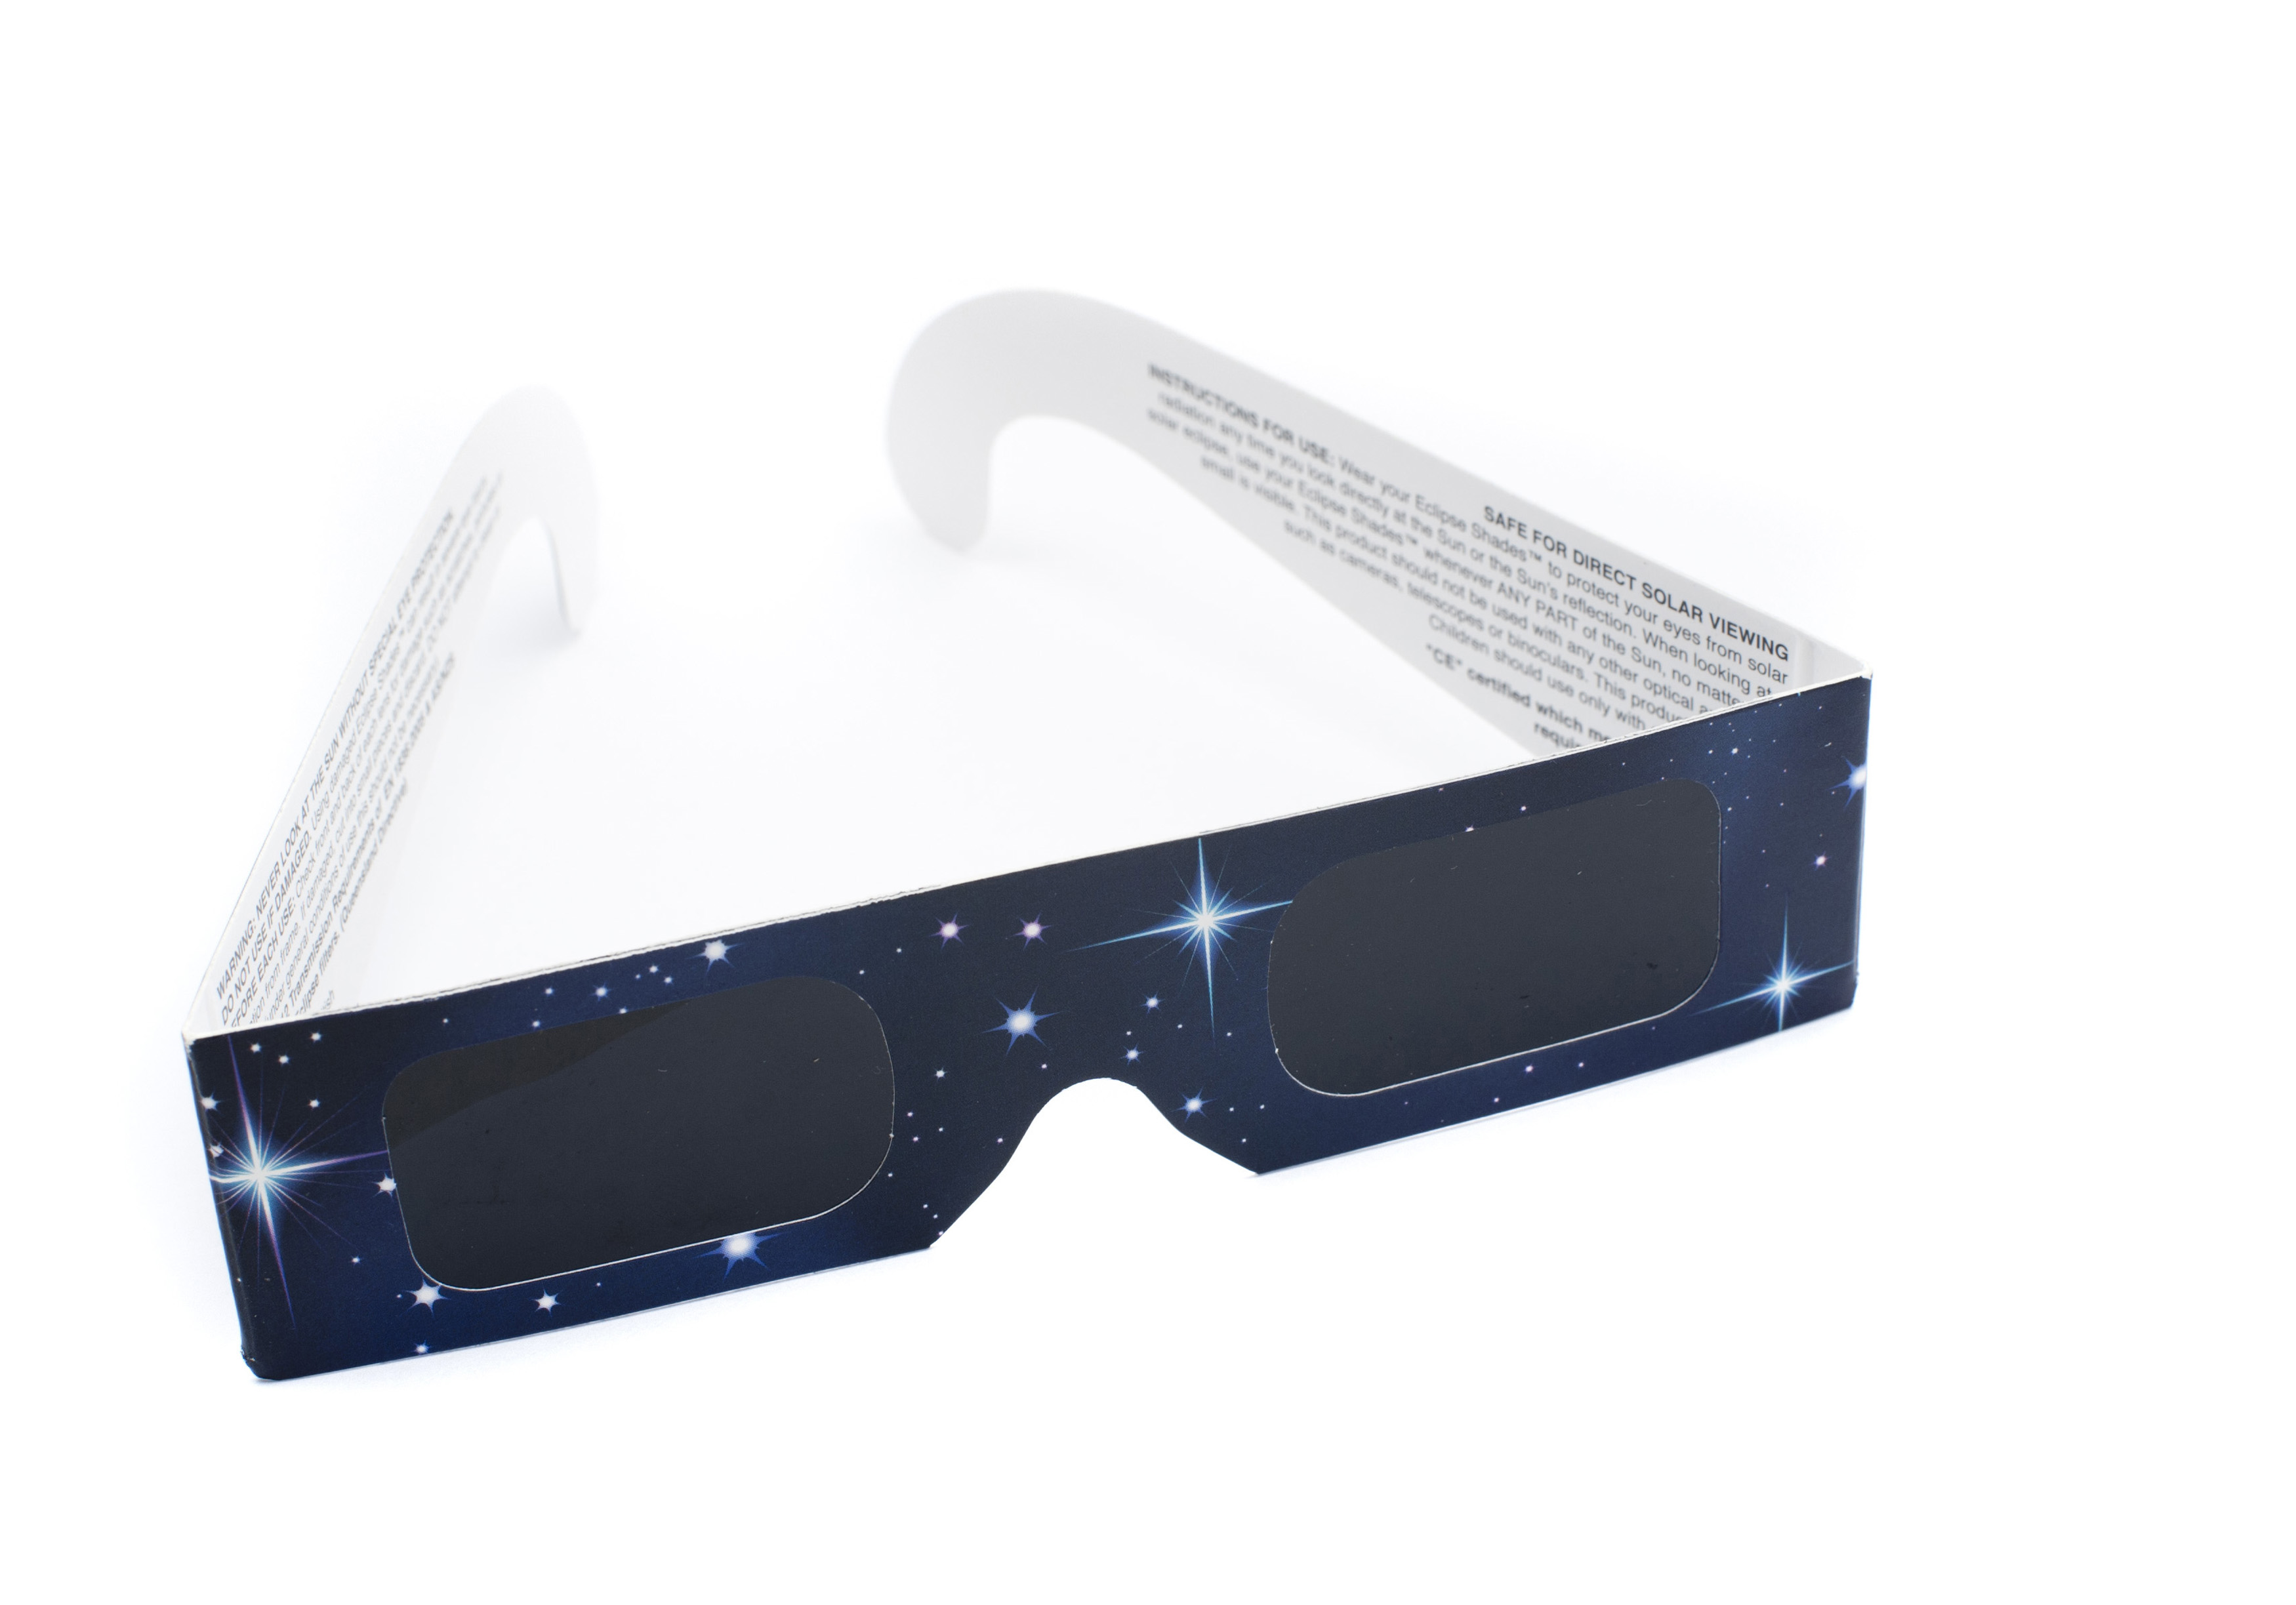 Eclipse viewing glasses with very dark lenses incorporating a special filter to protect the human eye from the intense light of the sun when viewing an eclipse, isolated on white